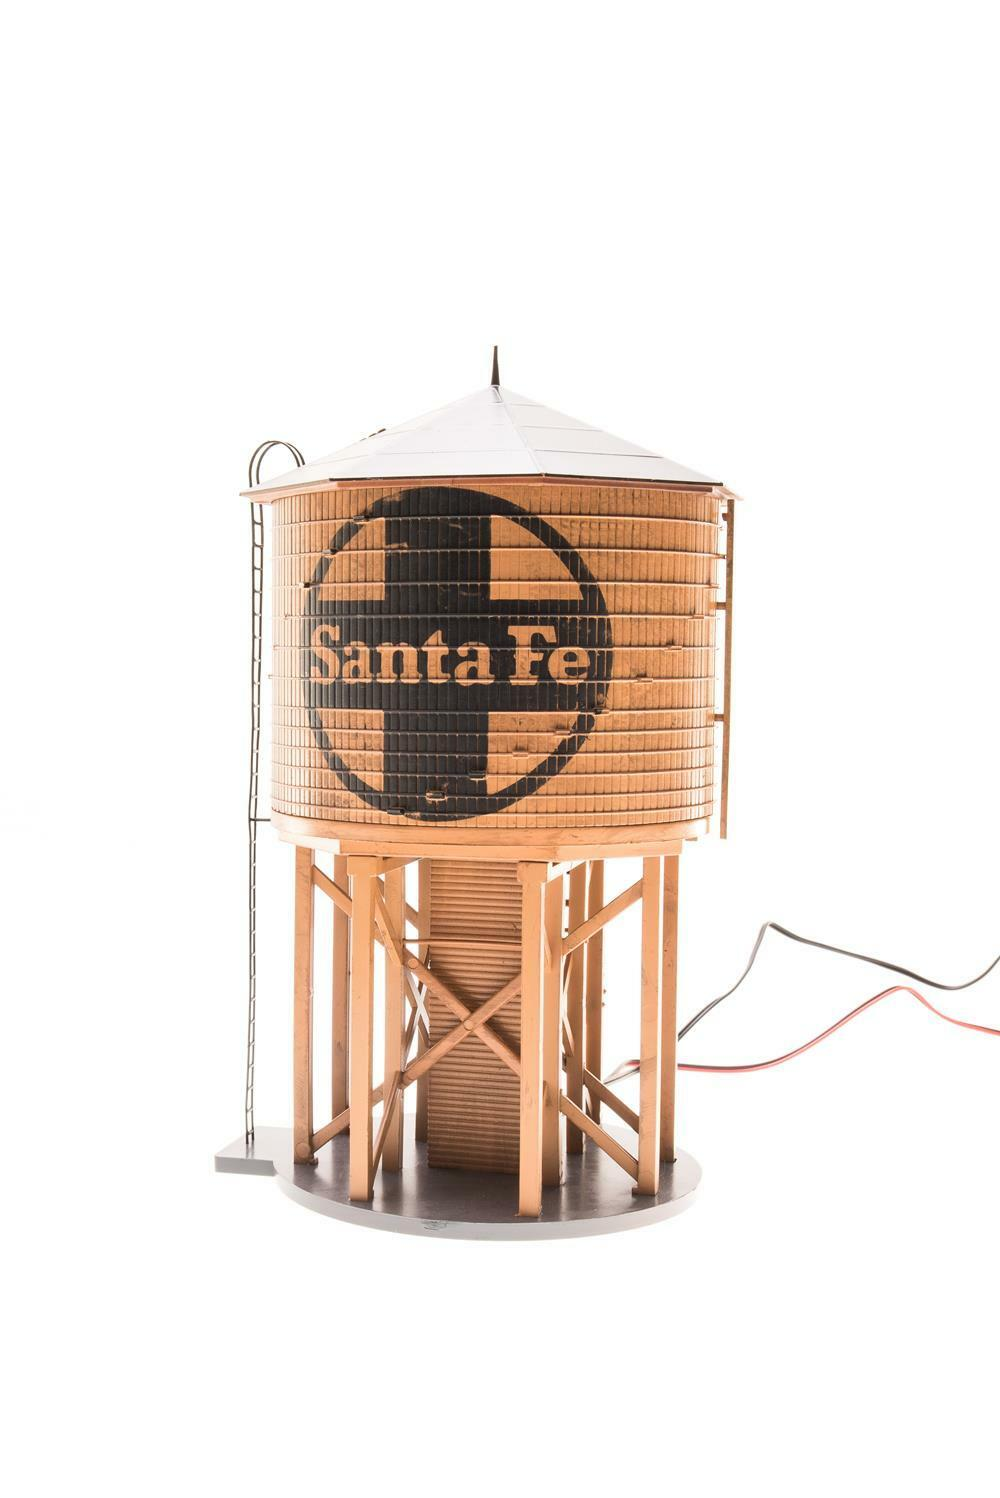 Broadway Limited 6092 HO Santa Fe Operating Water Tower with Sound